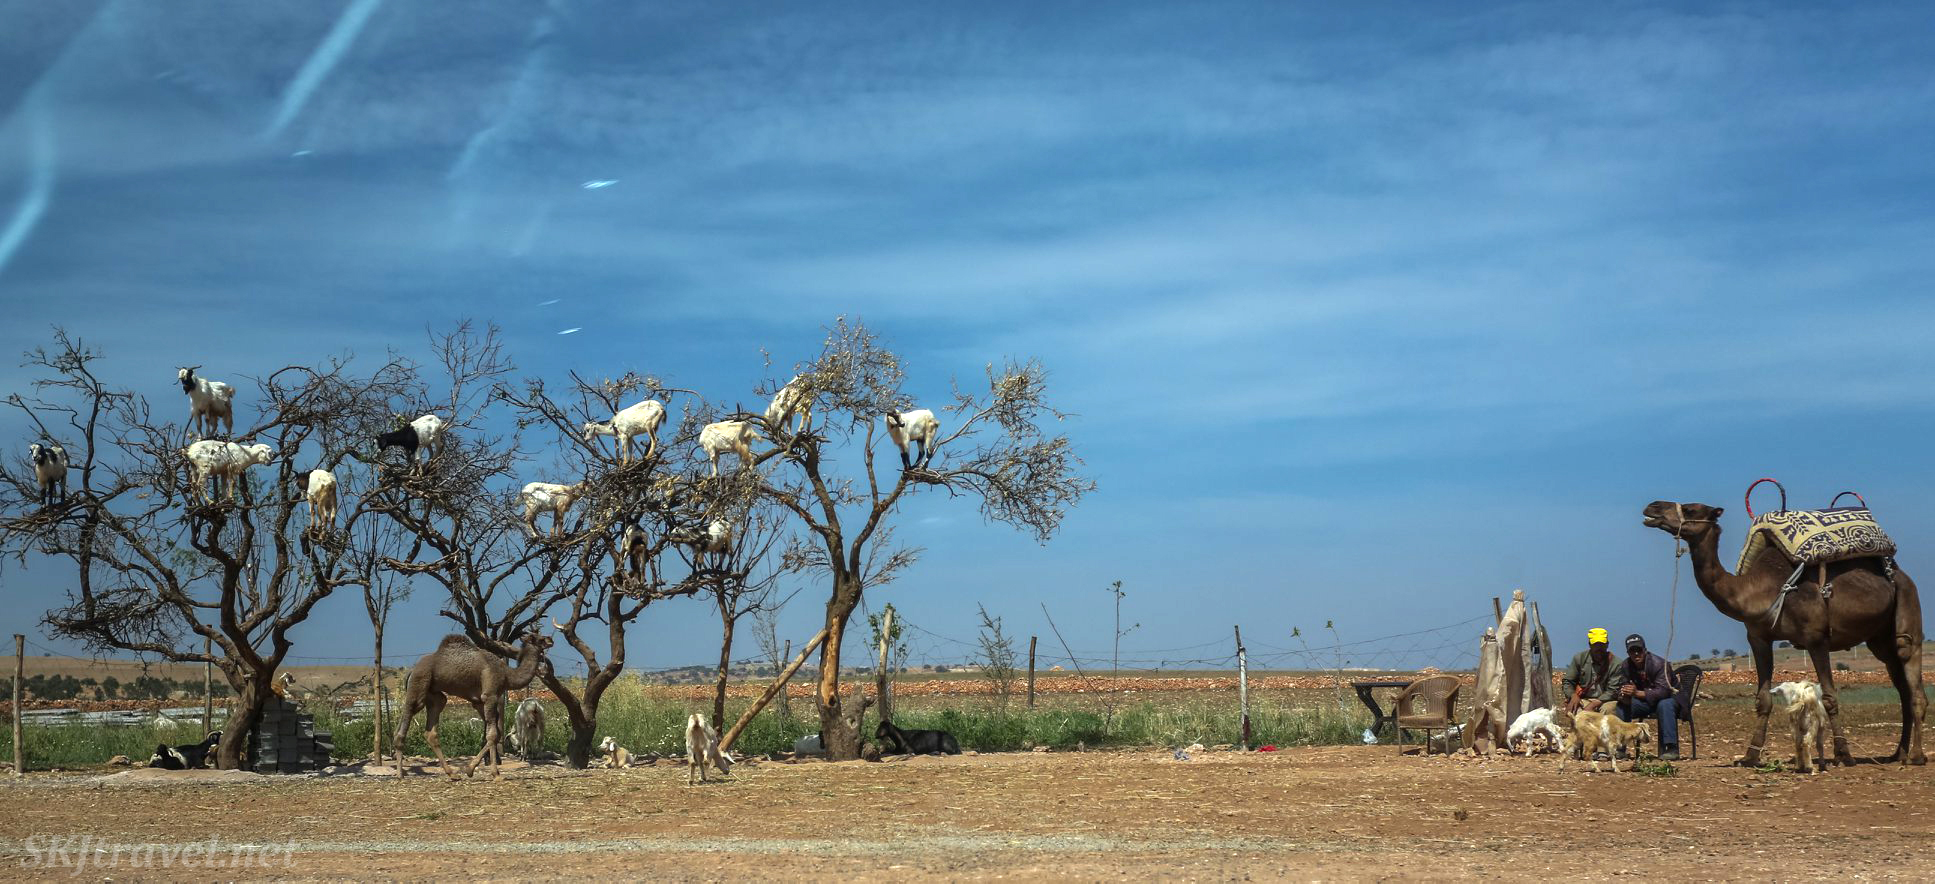 Goats in a tree and camels along the roadside between Marrakech and Essaouira, Morocco.